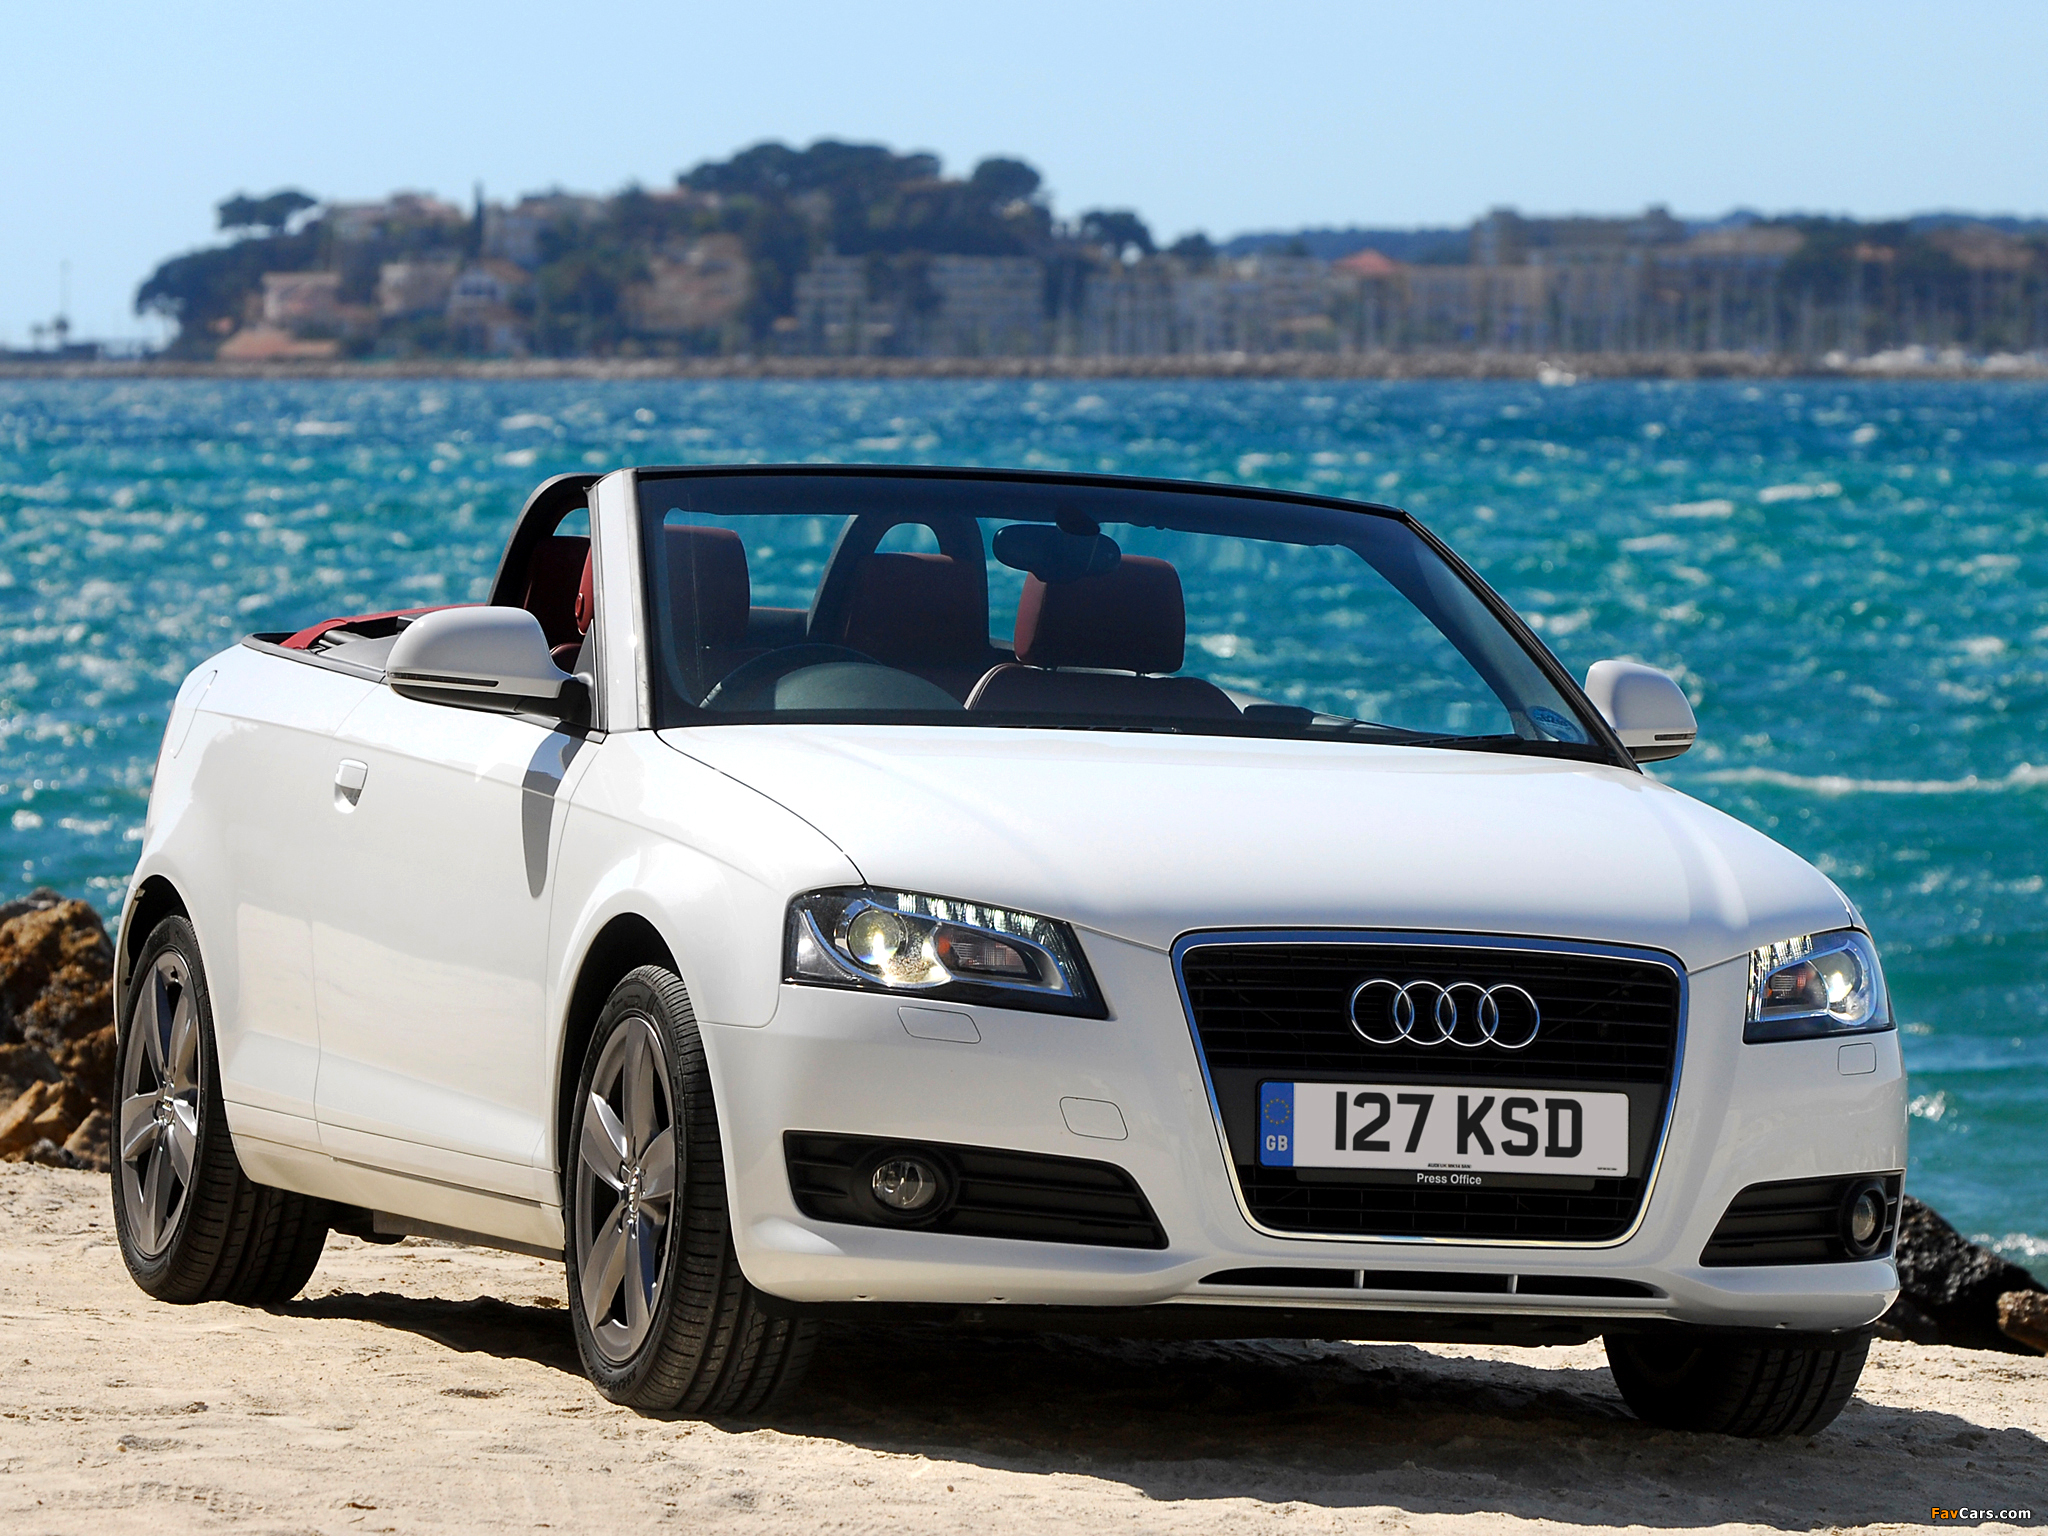 audi a3 2 0t cabriolet uk spec 8pa 2008 images 2048x1536. Black Bedroom Furniture Sets. Home Design Ideas